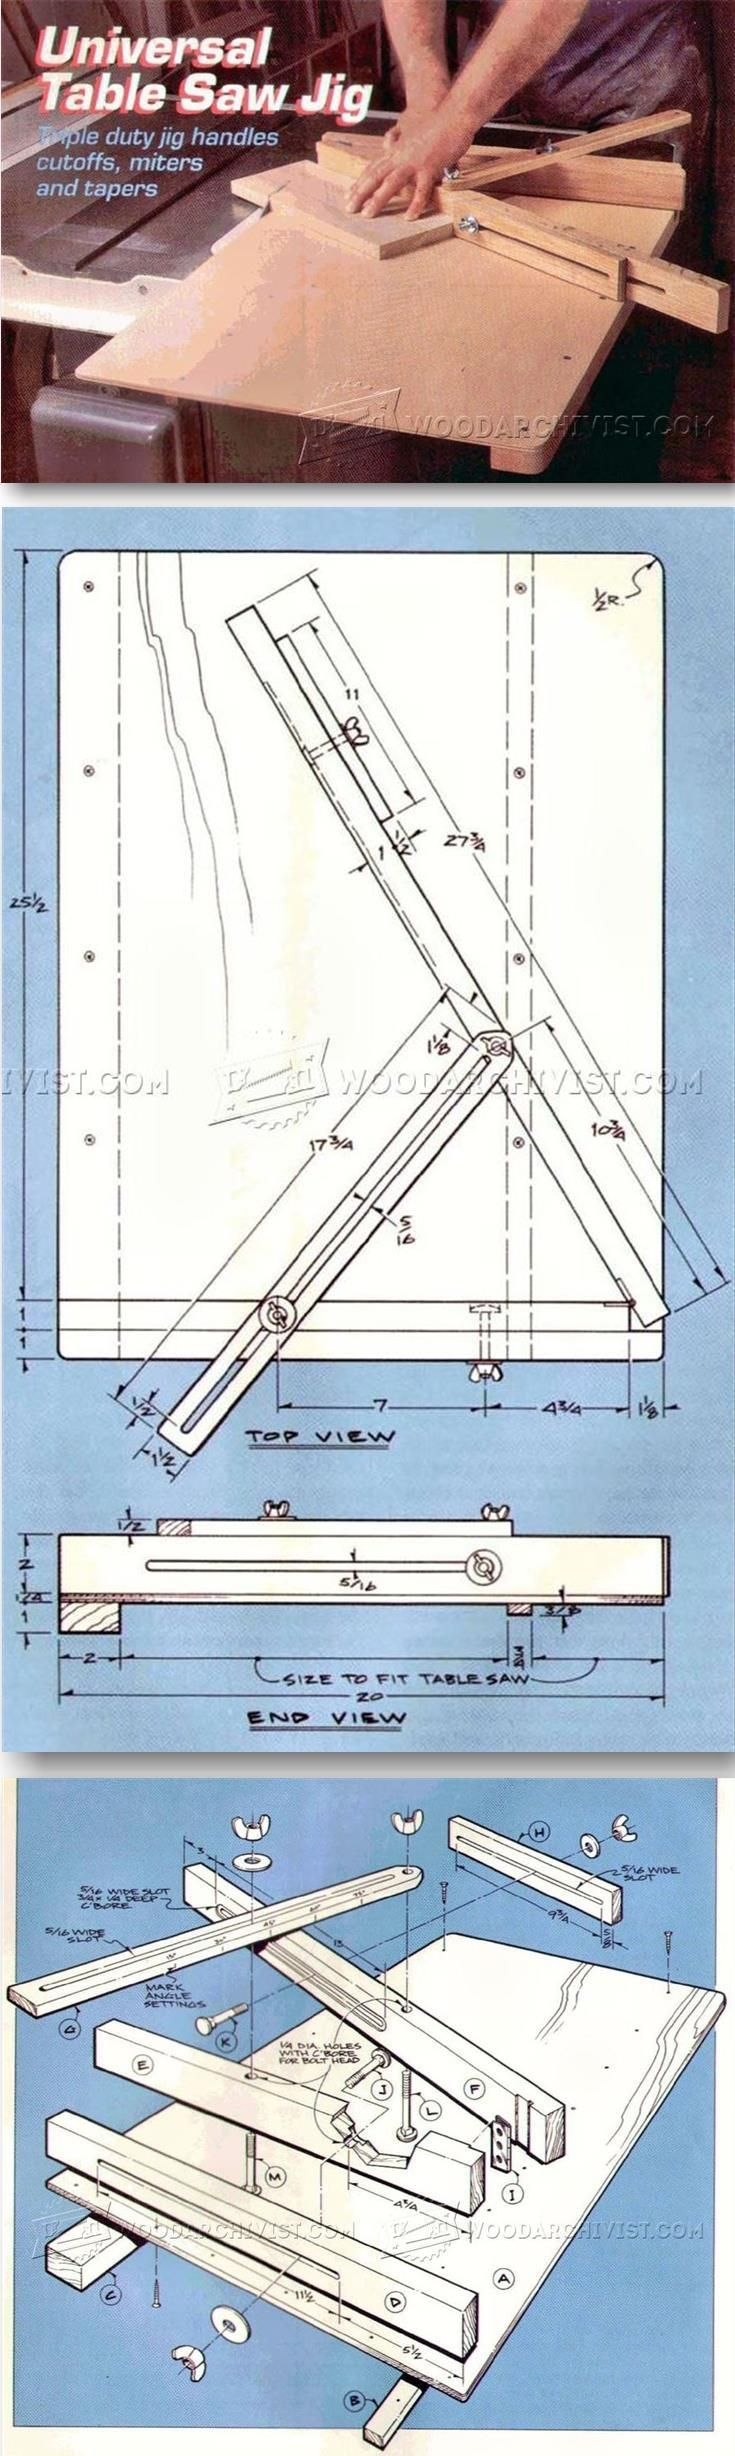 Crosscut Sled Plans - Table Saw Tips, Jigs and Fixtures | WoodArchivist.com